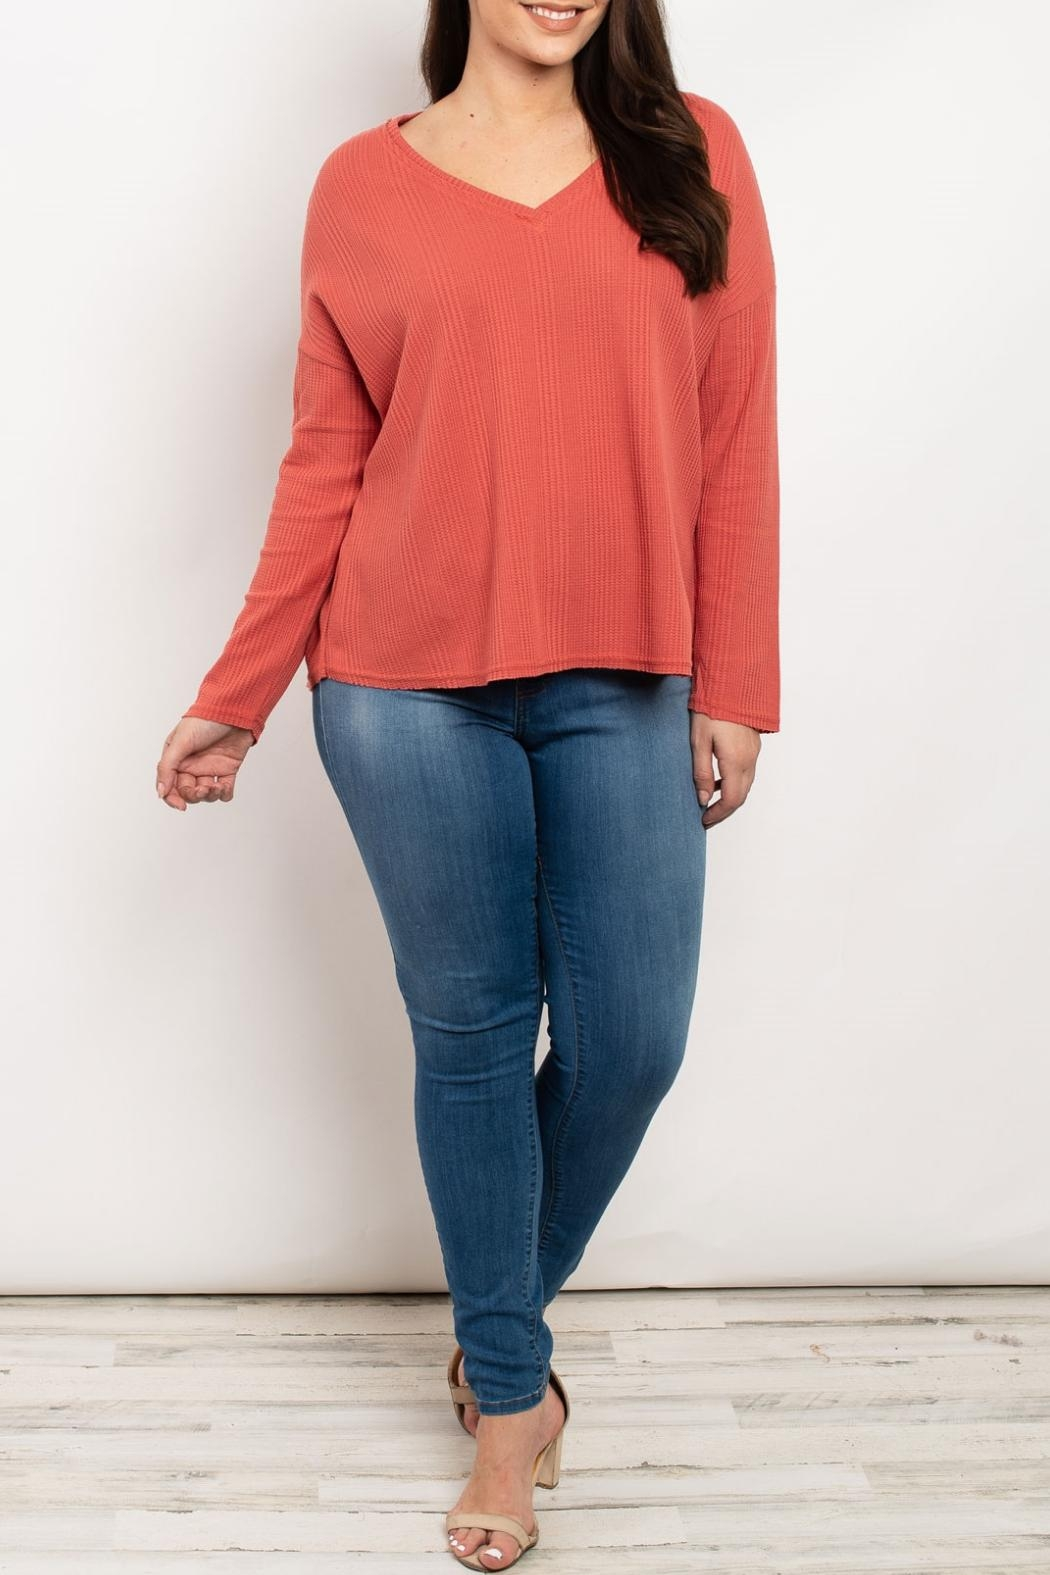 LoveRiche Rust V-Neck Top - Main Image